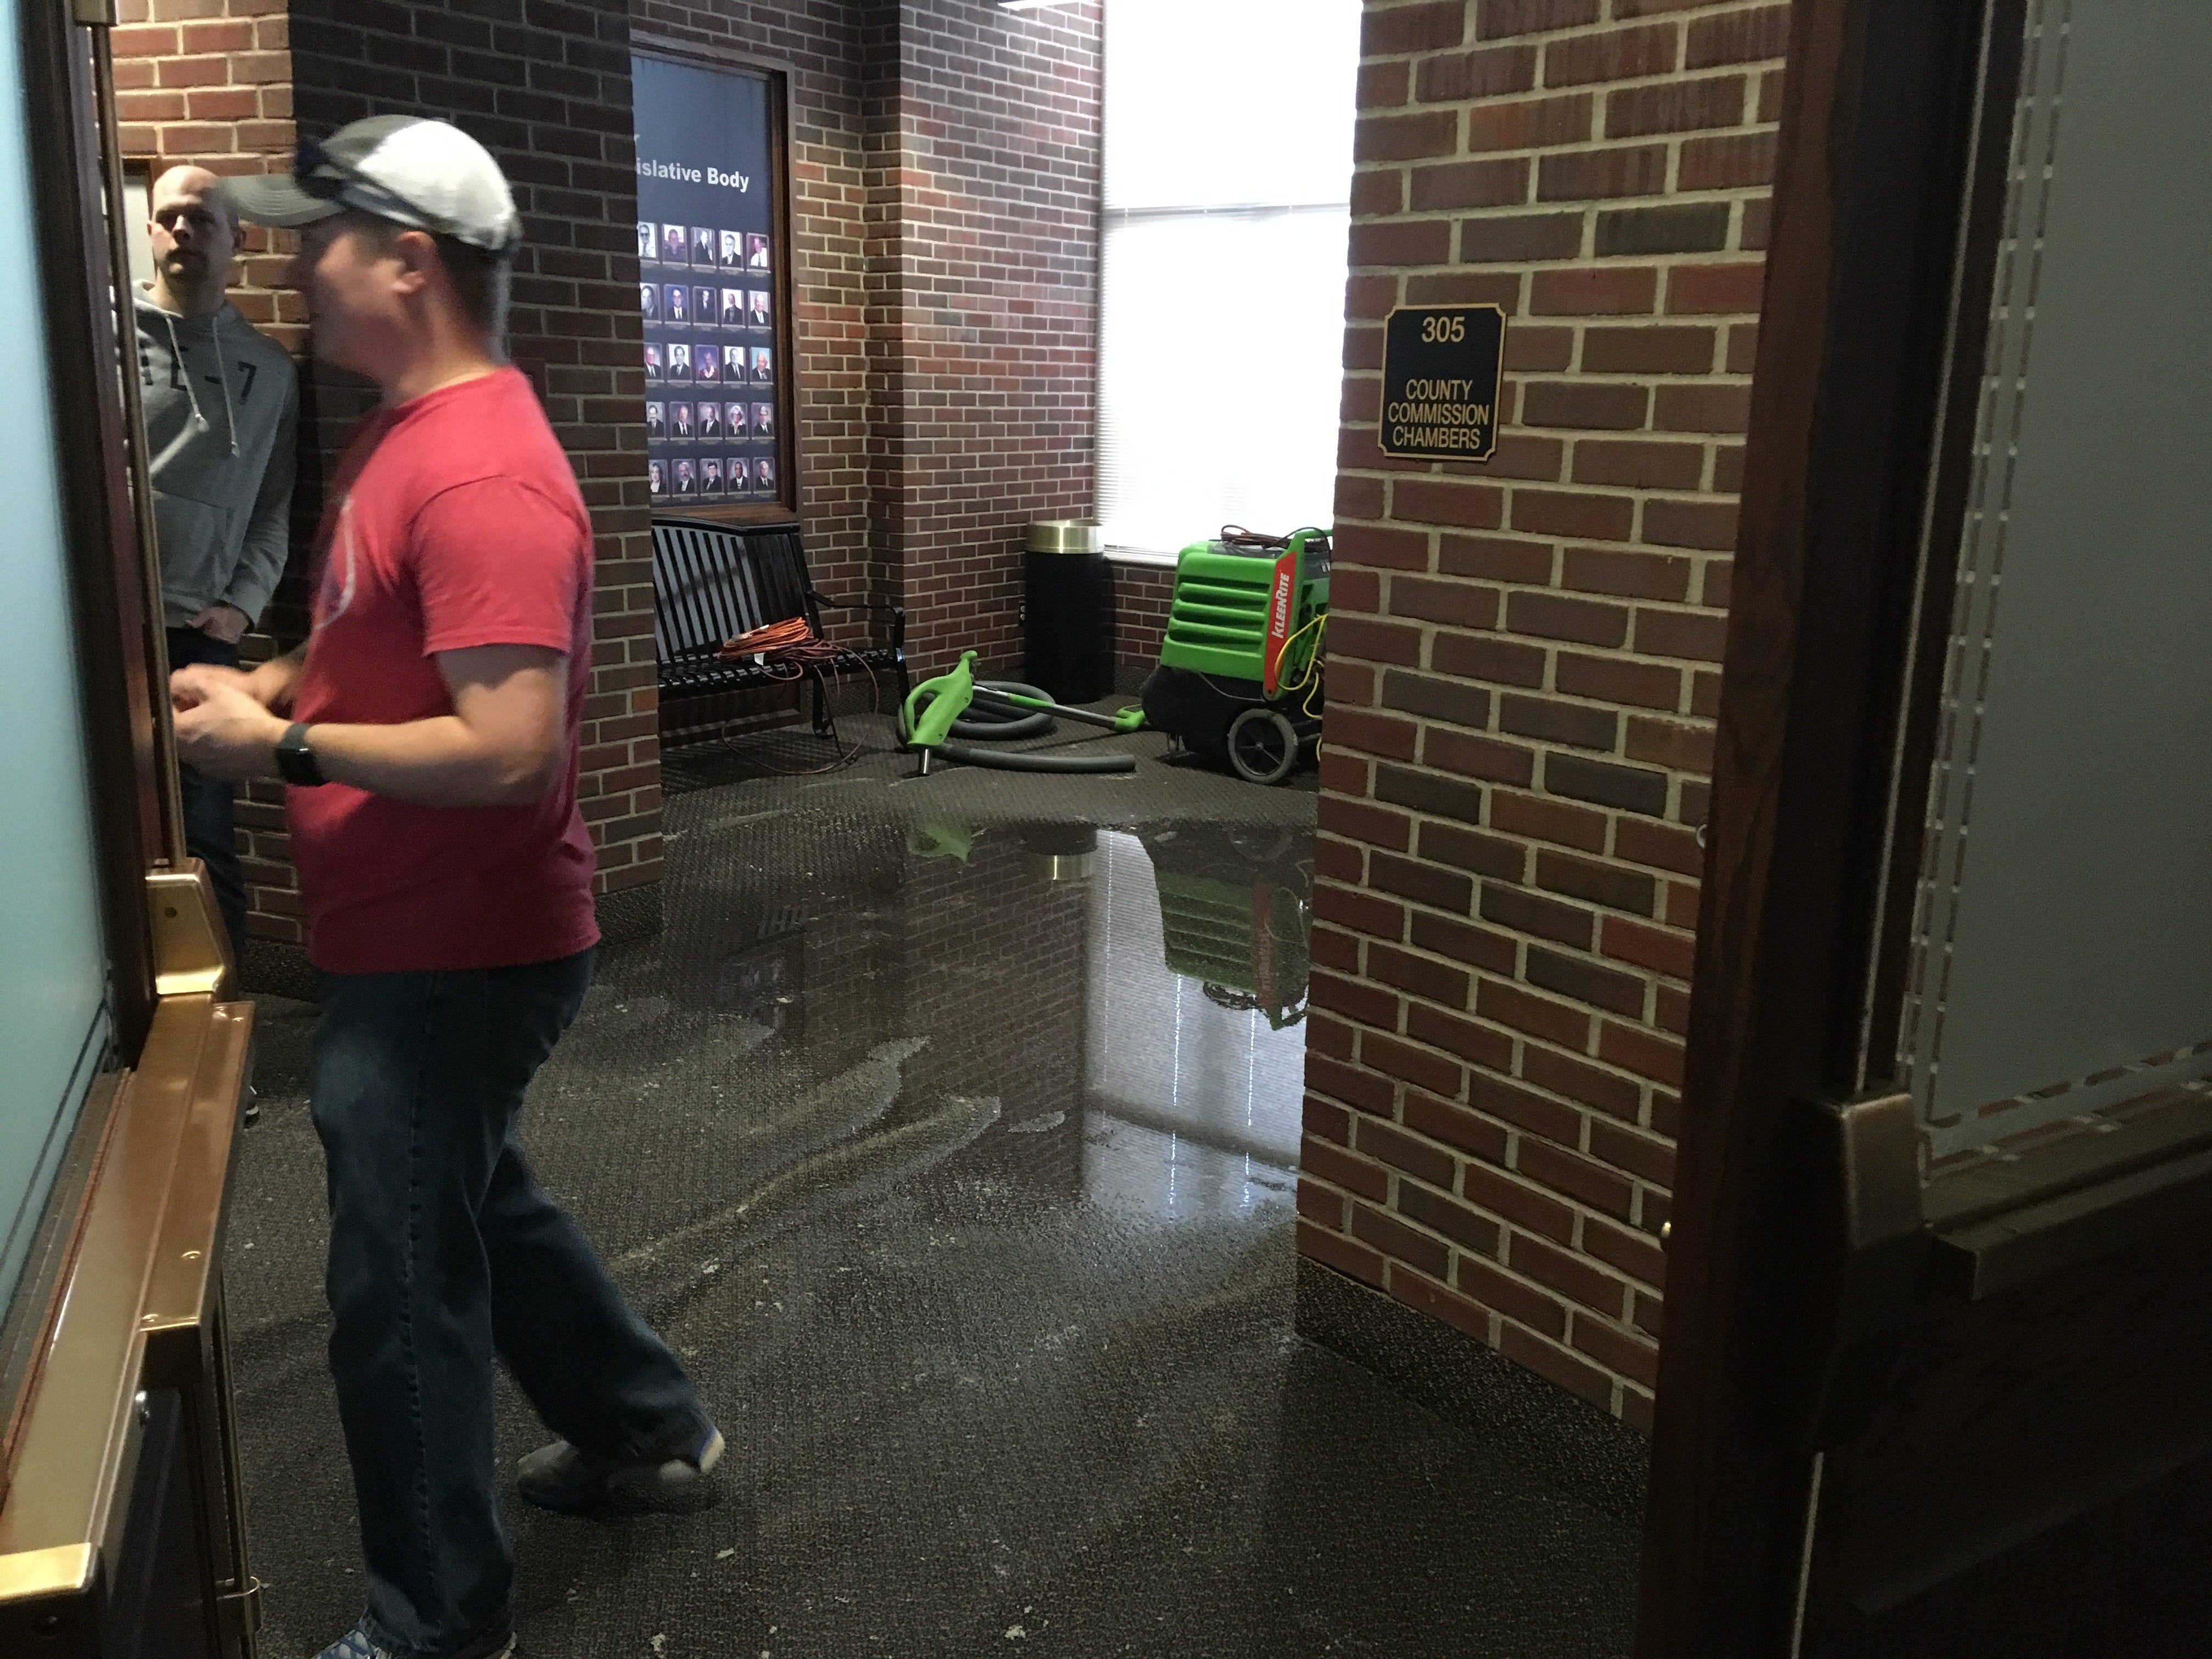 A burst water pipe caused significant damage to the Montgomery County Courthouse on Sunday, Jan. 6, 2019.